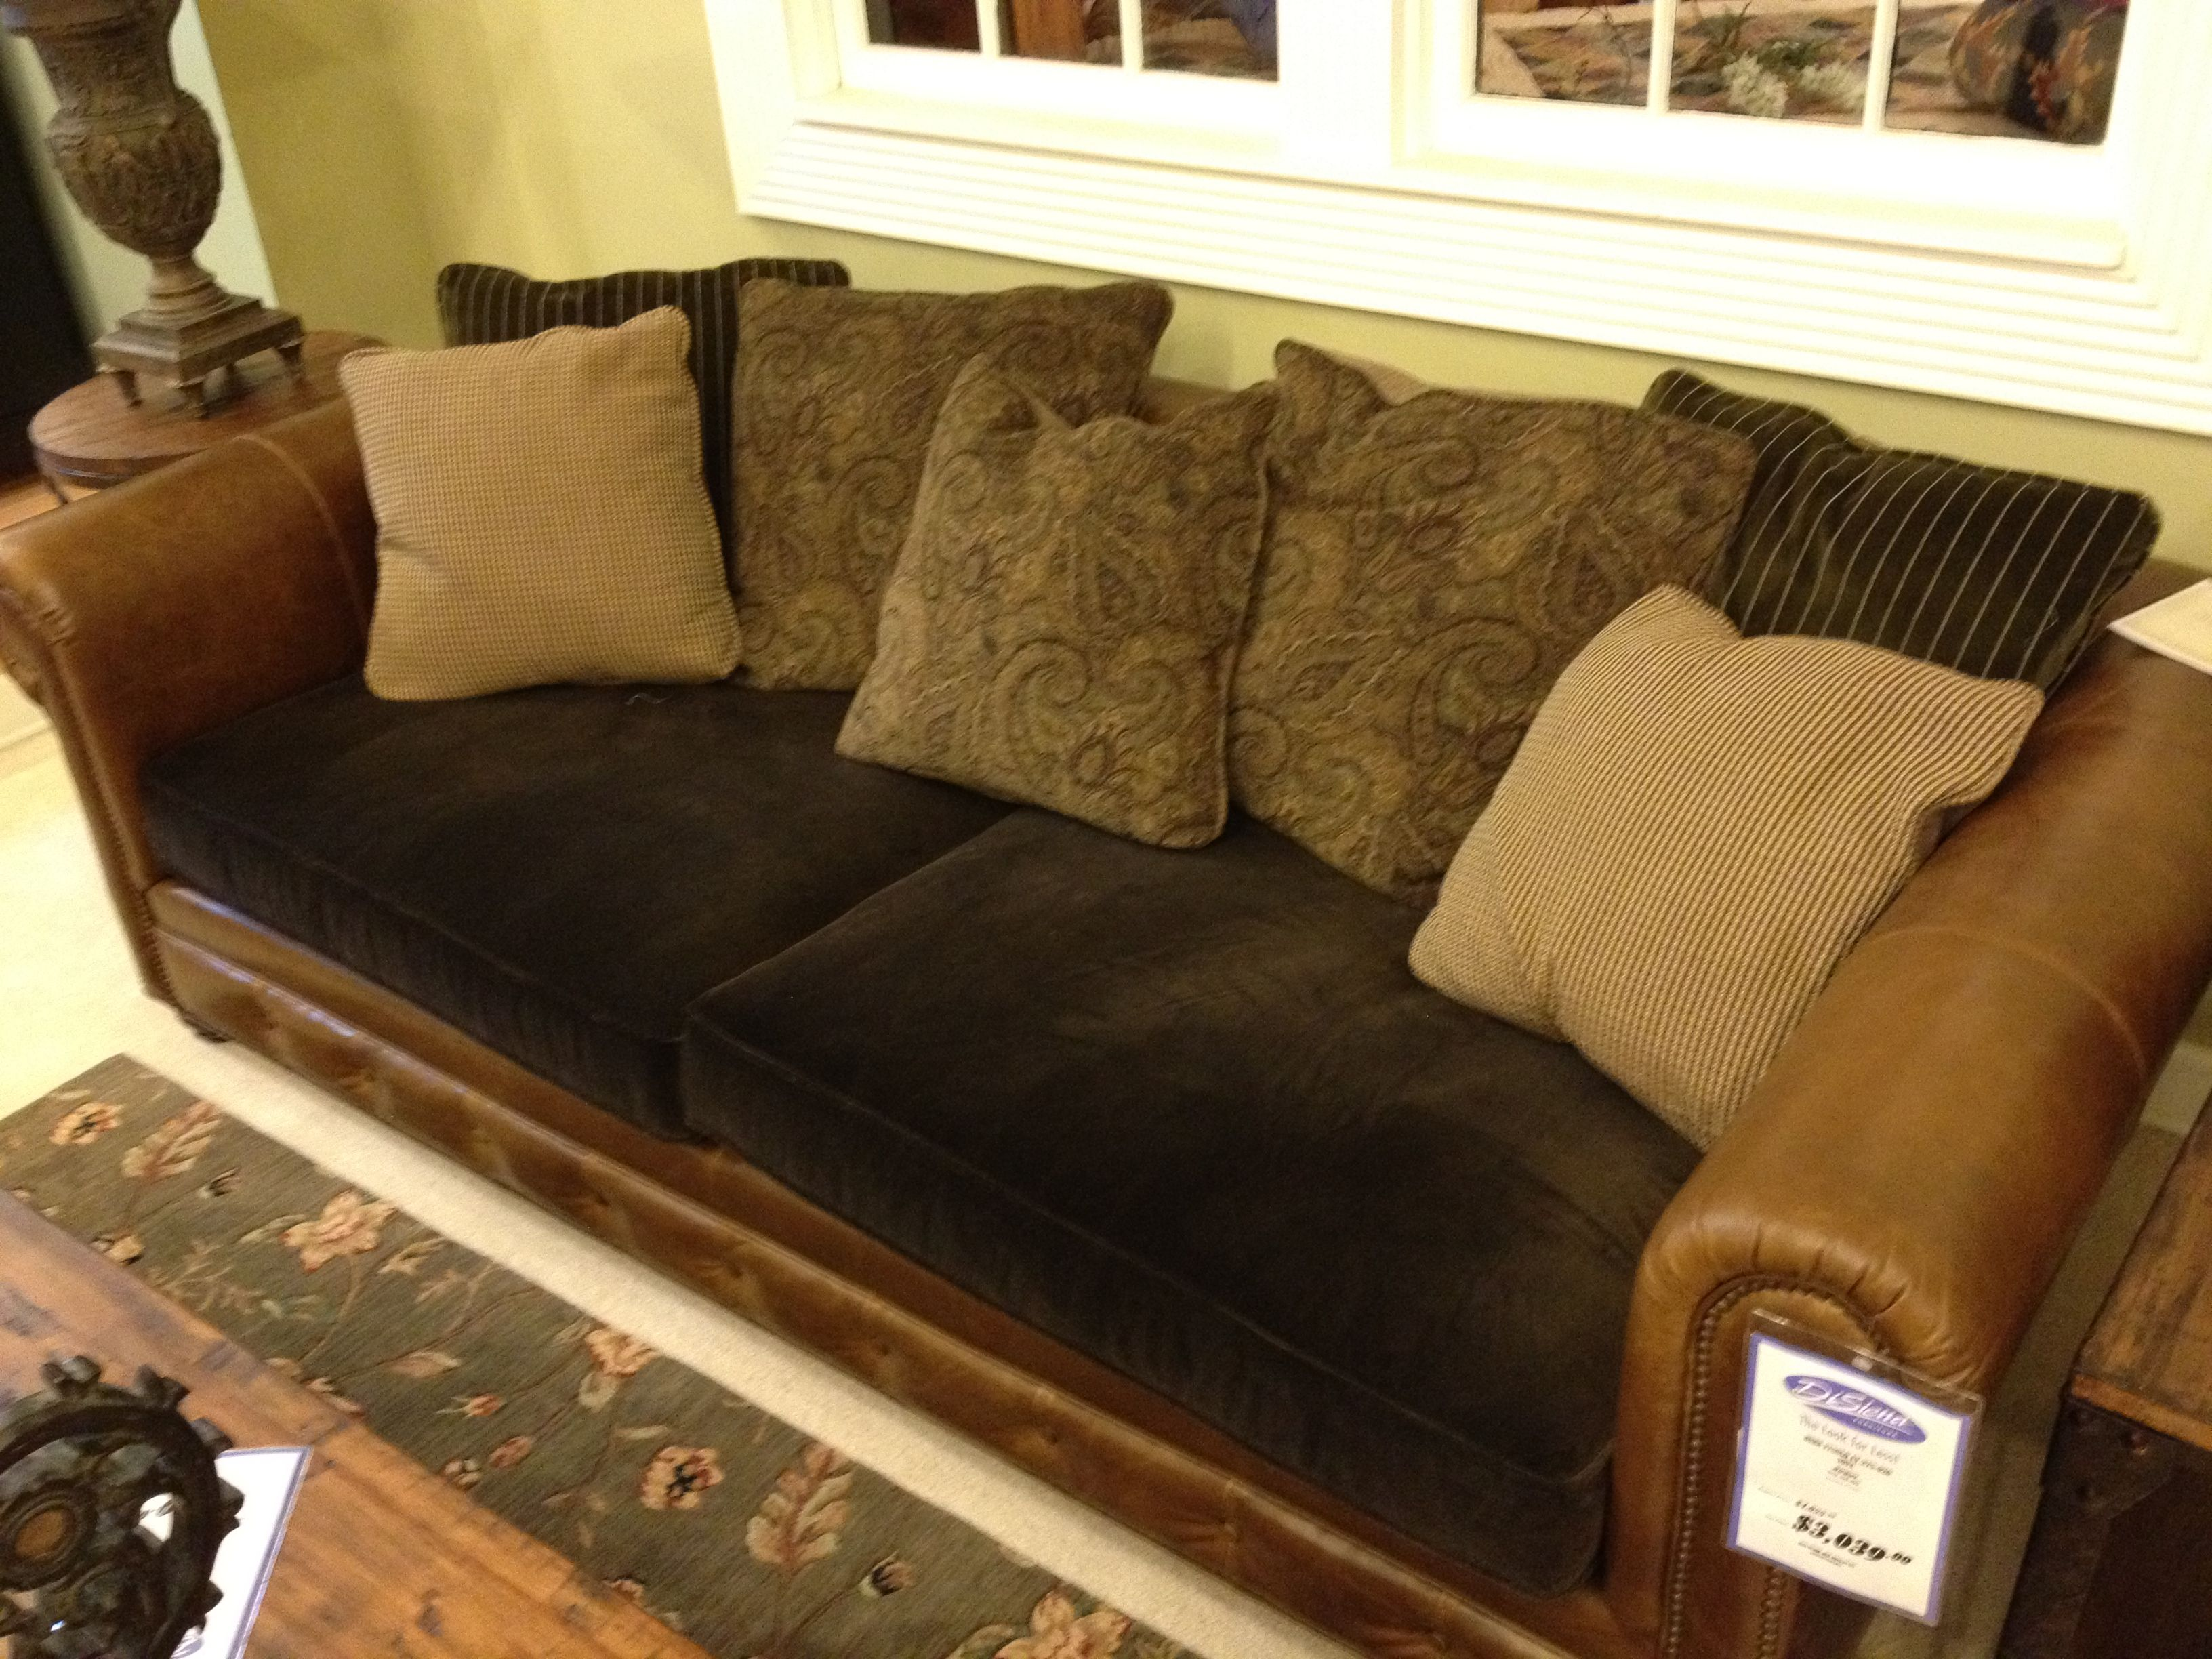 Sofa Pads Uk Bed In Metro Manila Leather Couch With Fabric Cushions Furniture Pinterest